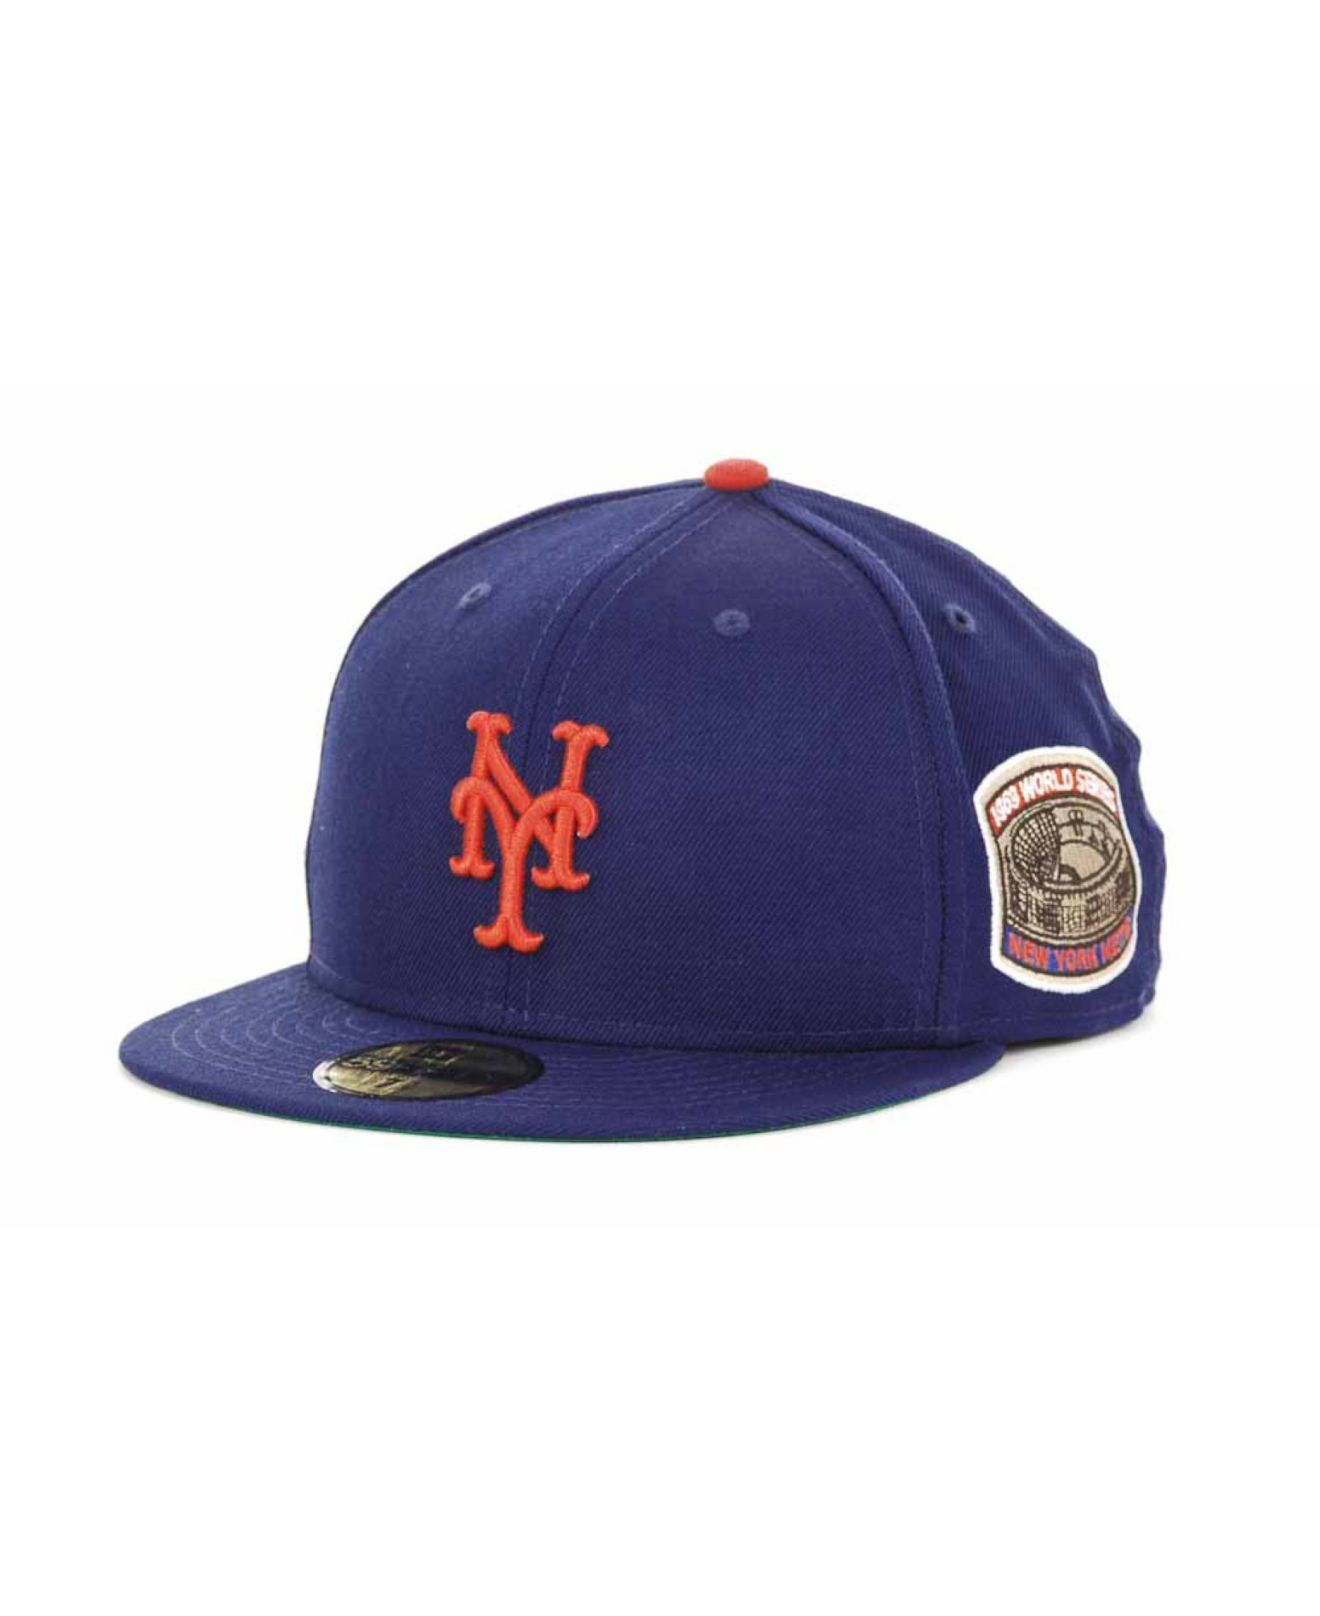 3e123561229 Lyst - KTZ New York Mets Retro World Series Patch 59fifty Cap in ...